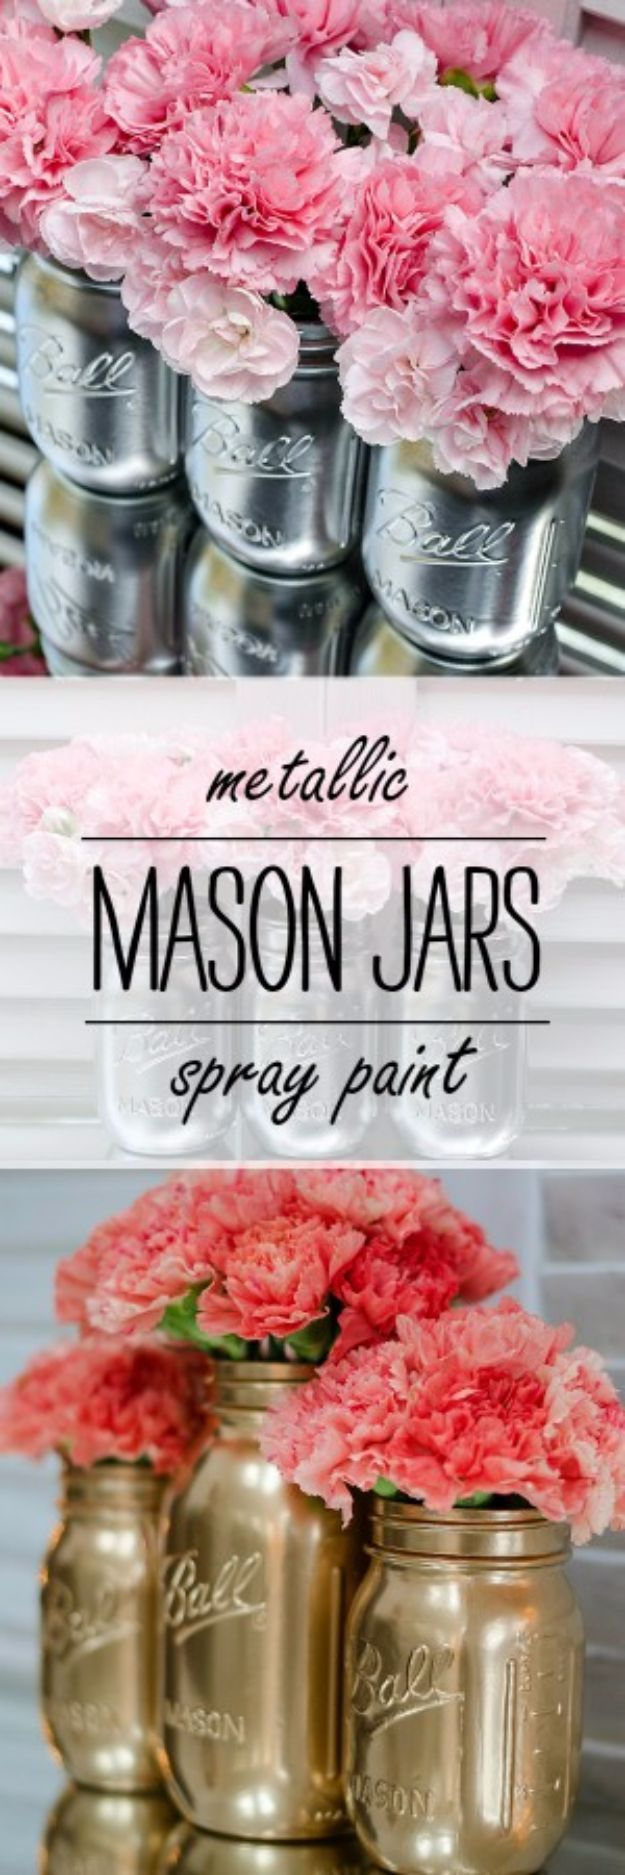 Cute DIY Mason Jar Ideas -Metallic Mason Jars - Fun Crafts, Creative Room Decor,...